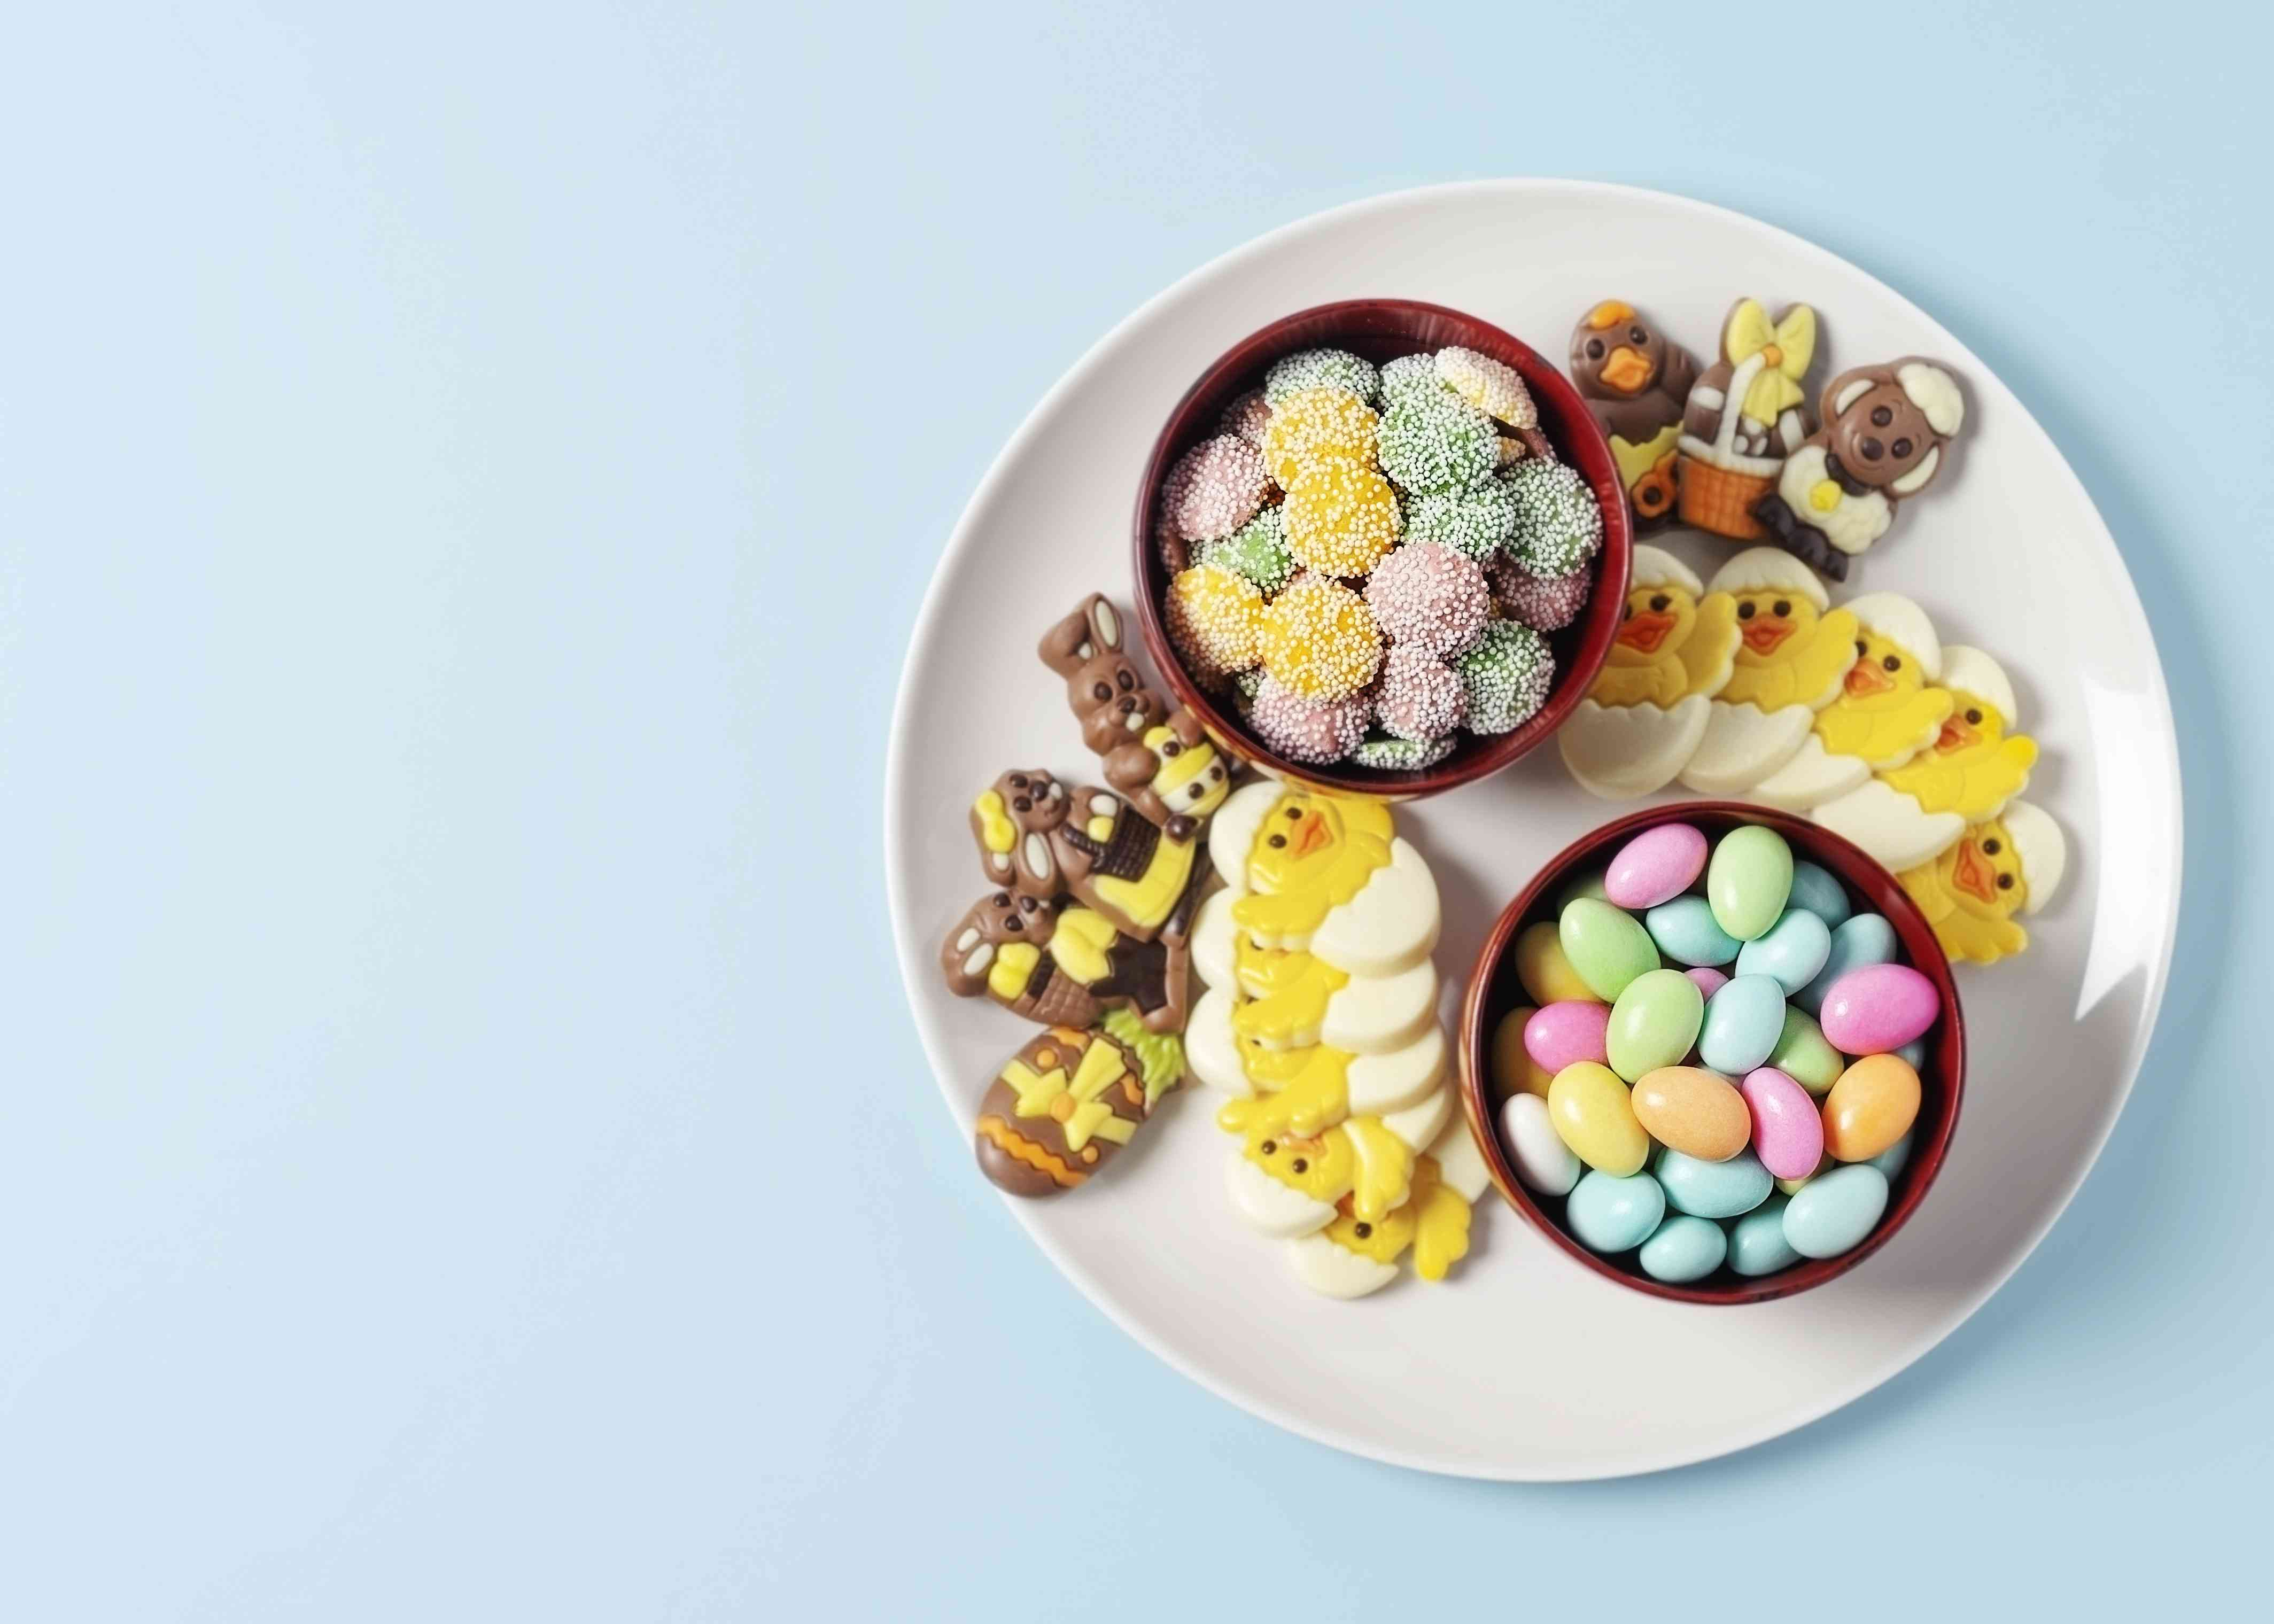 A variety of Easter chocolates and candy on a plate on blue background